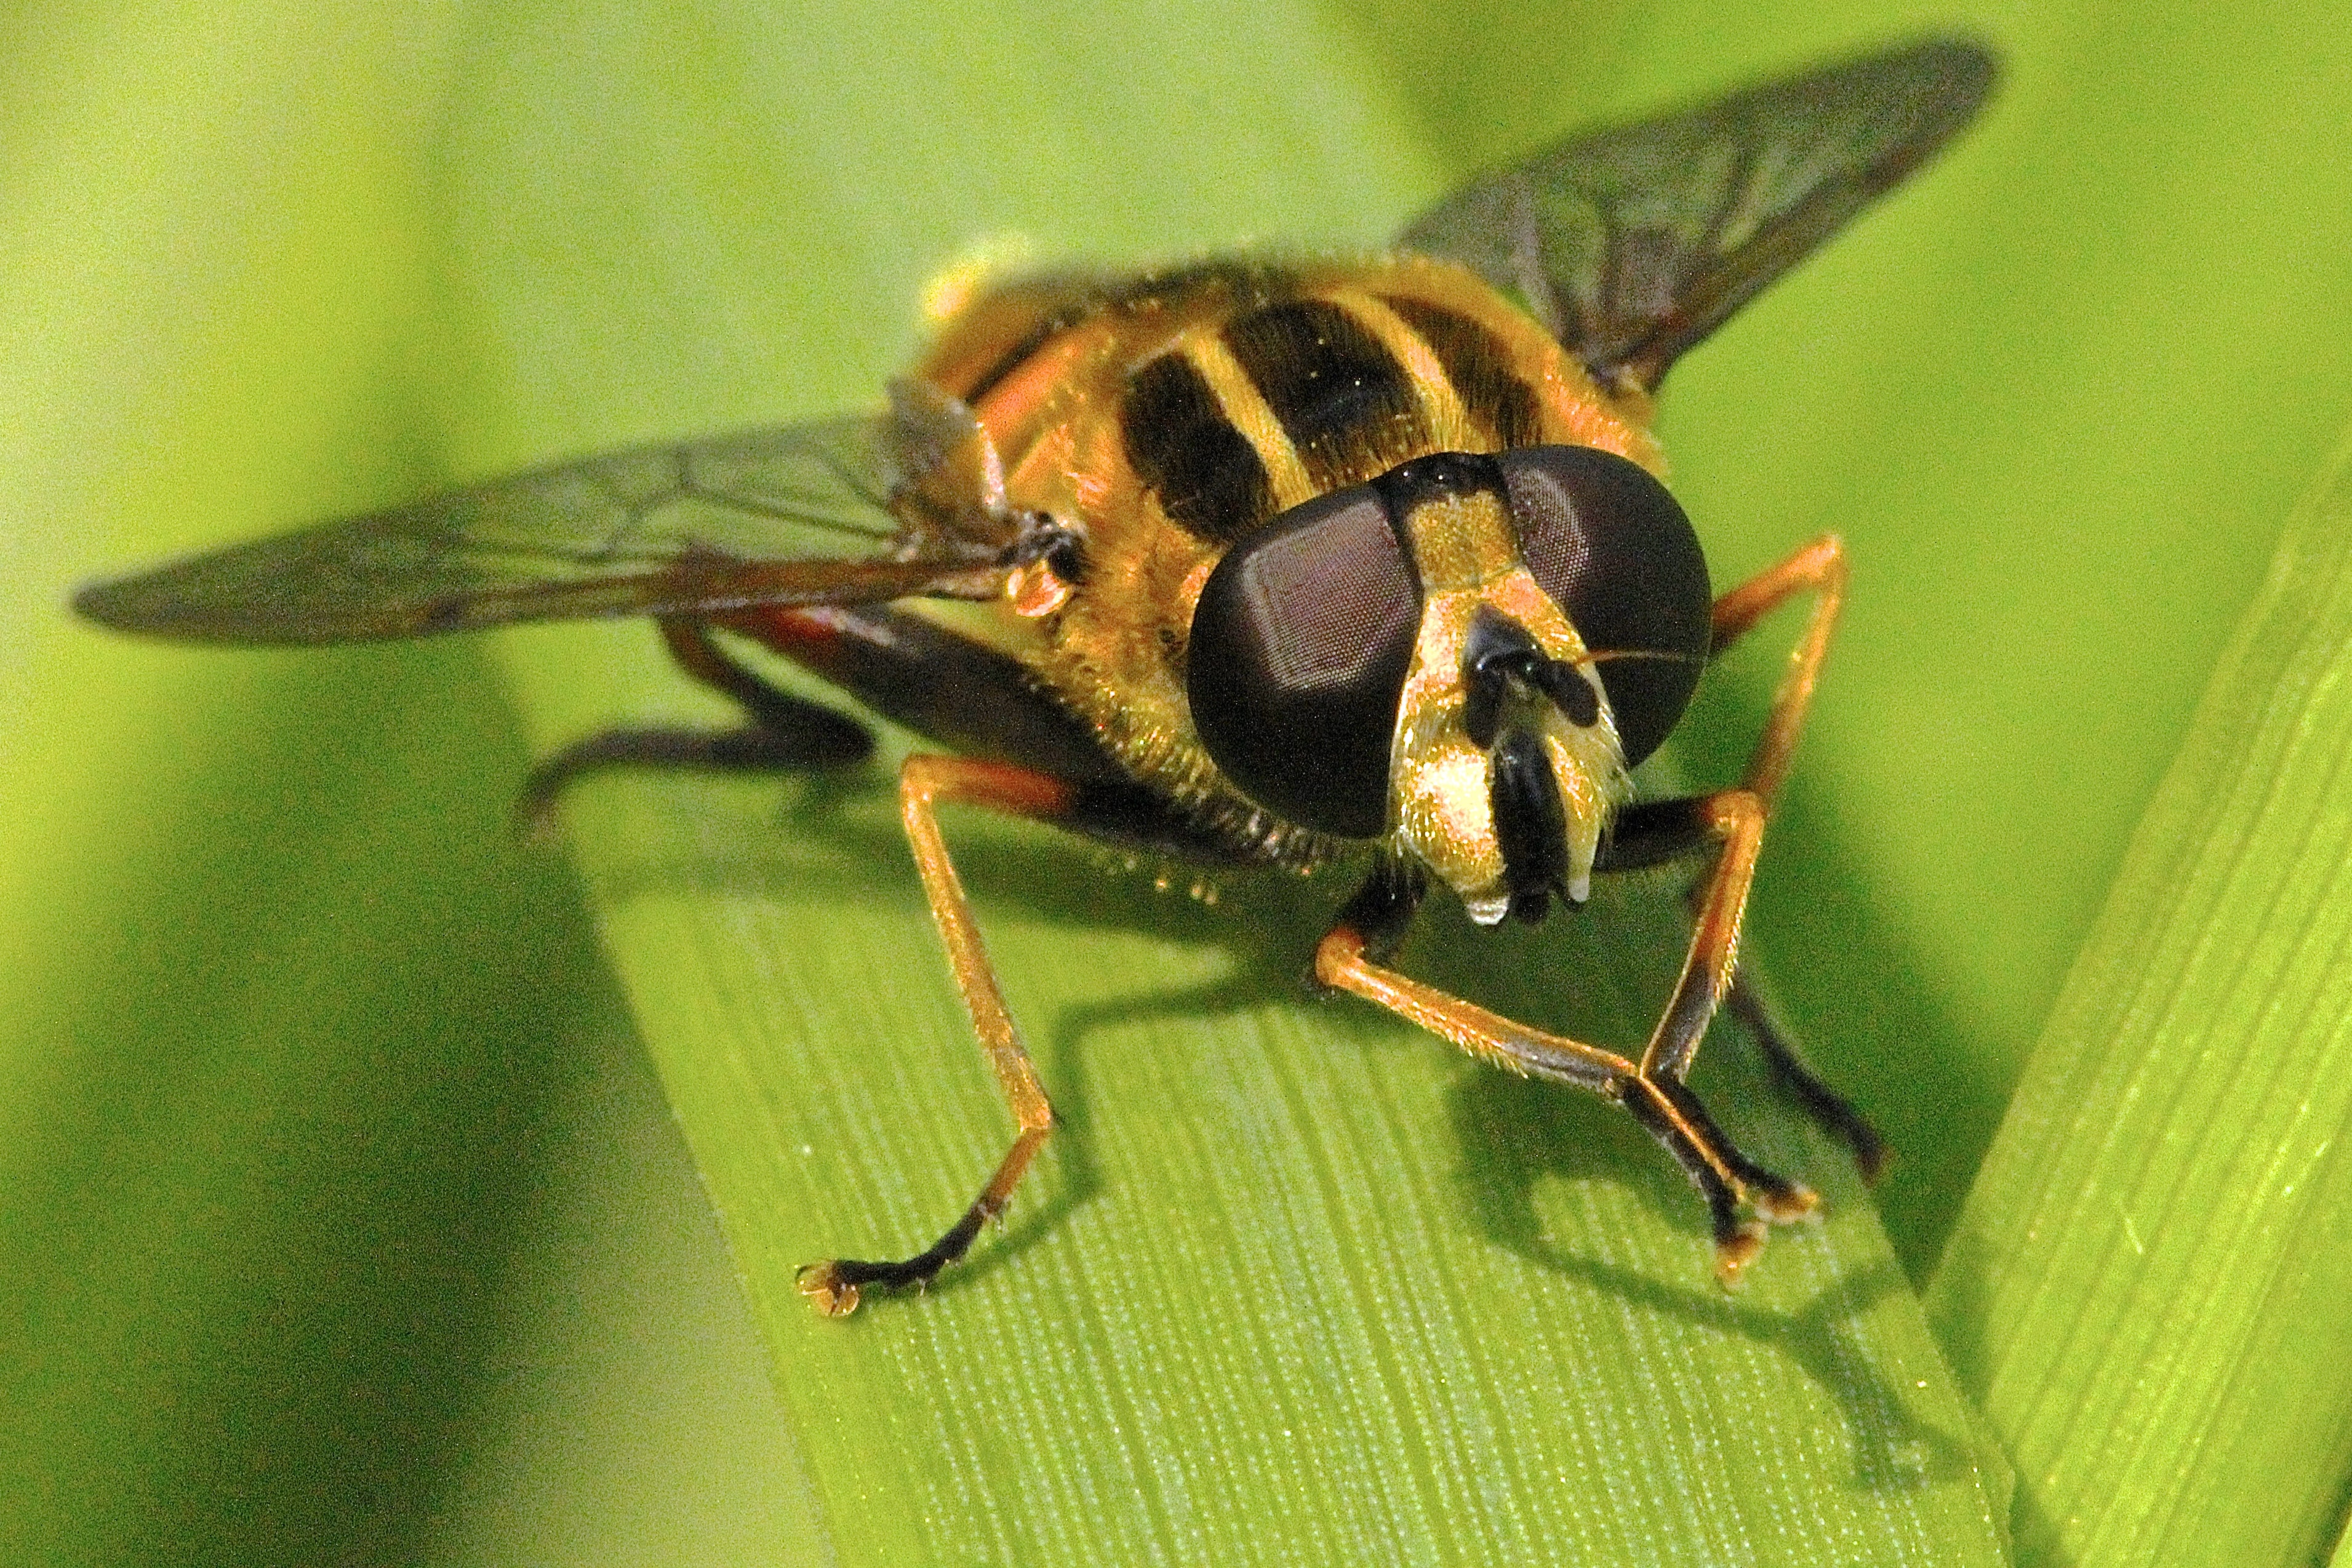 macro photography of brown and black insect